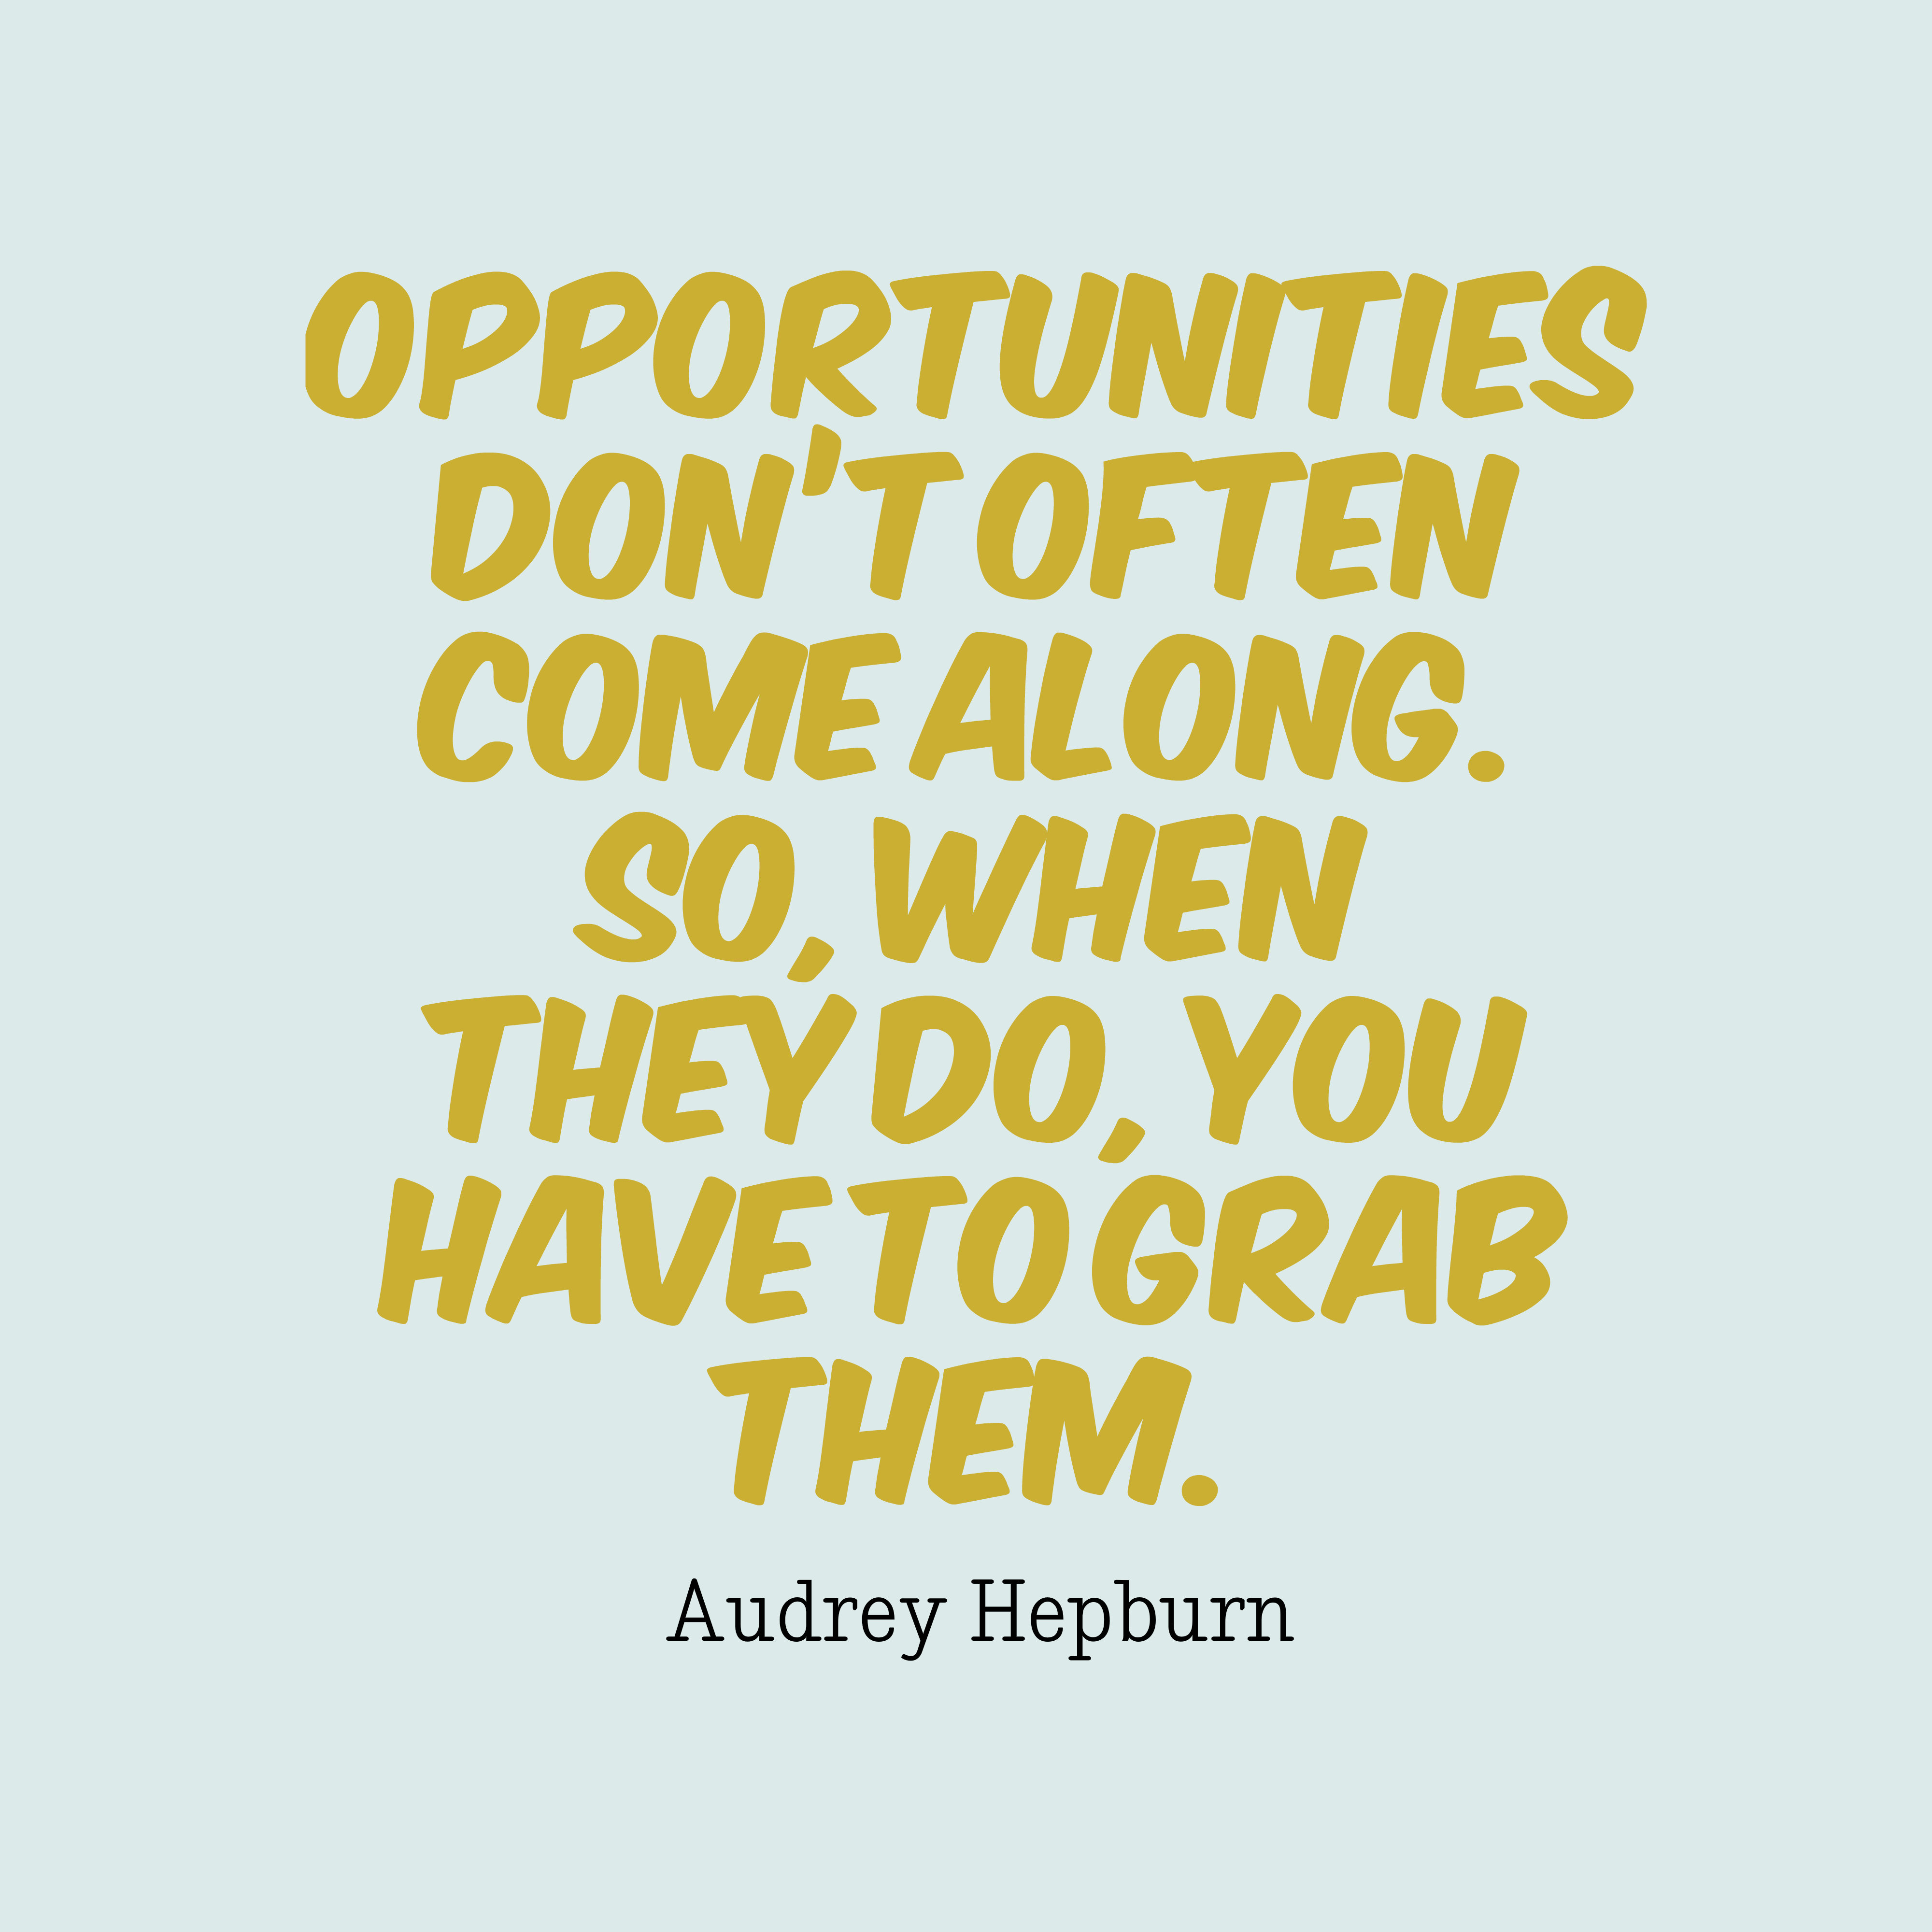 Audrey Hepburn quote about opportunities.